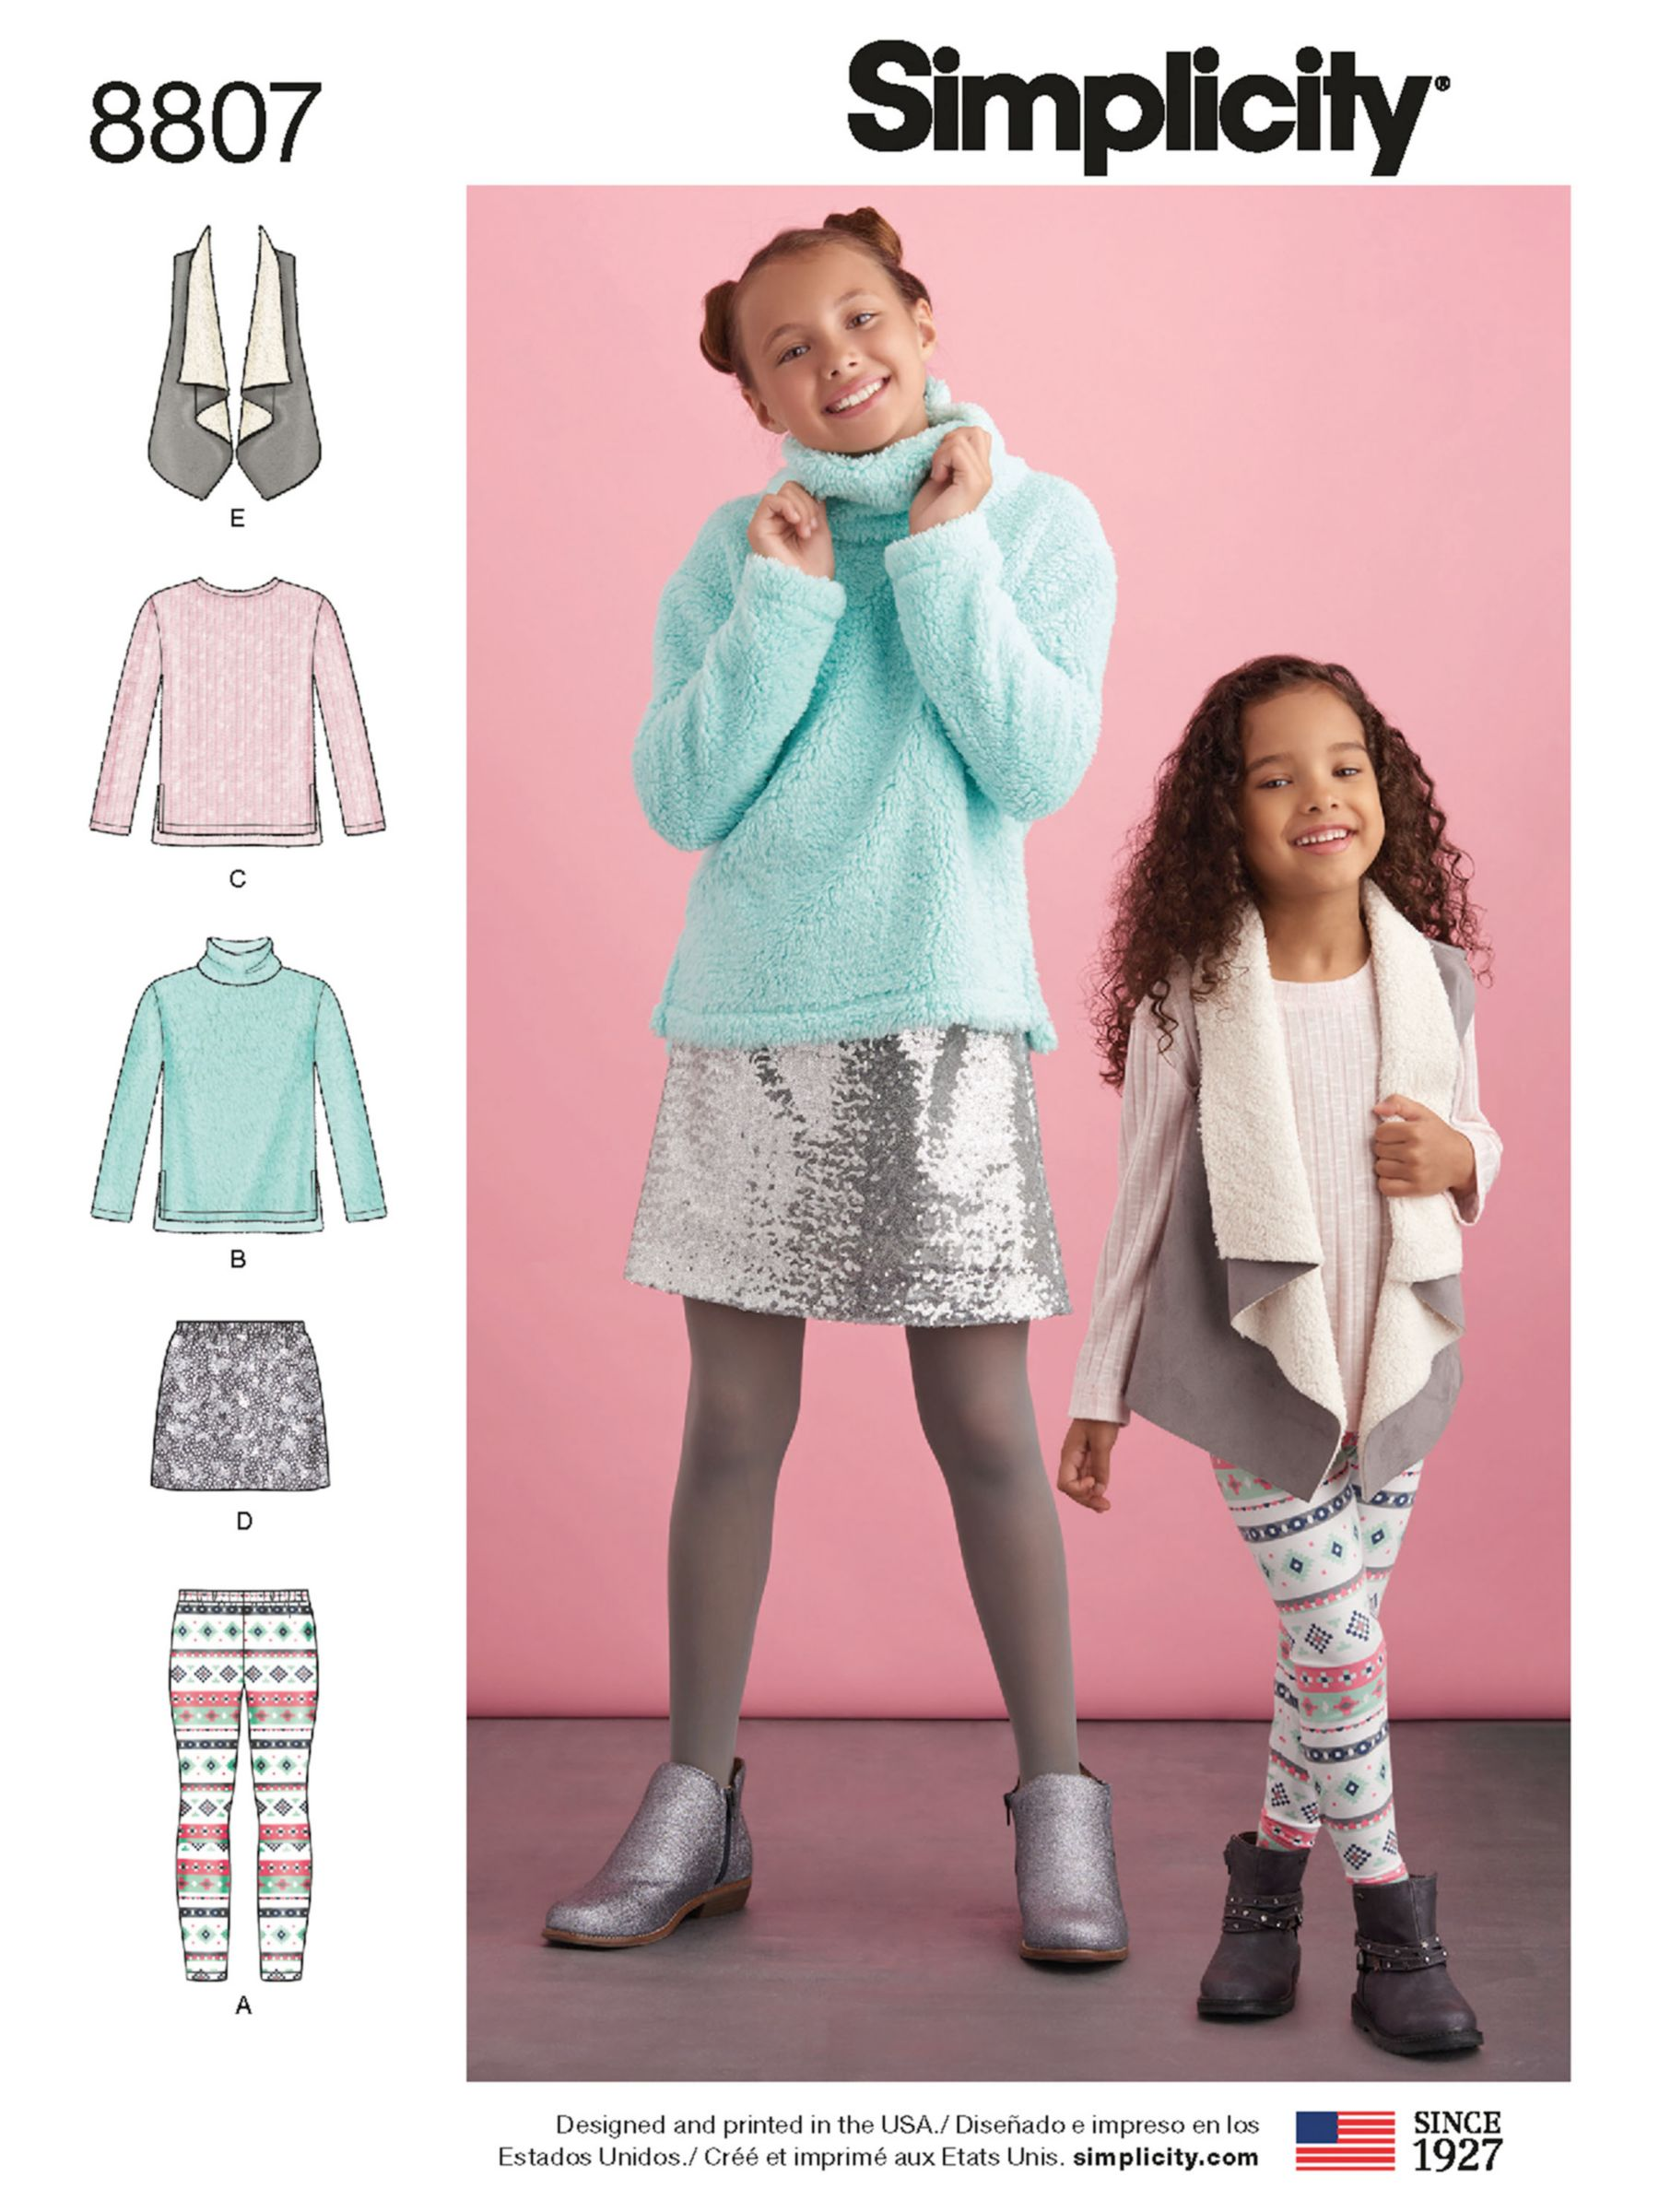 Simplicity Simplicity Children's Cardigan and Leggings Sewing Pattern, 8807